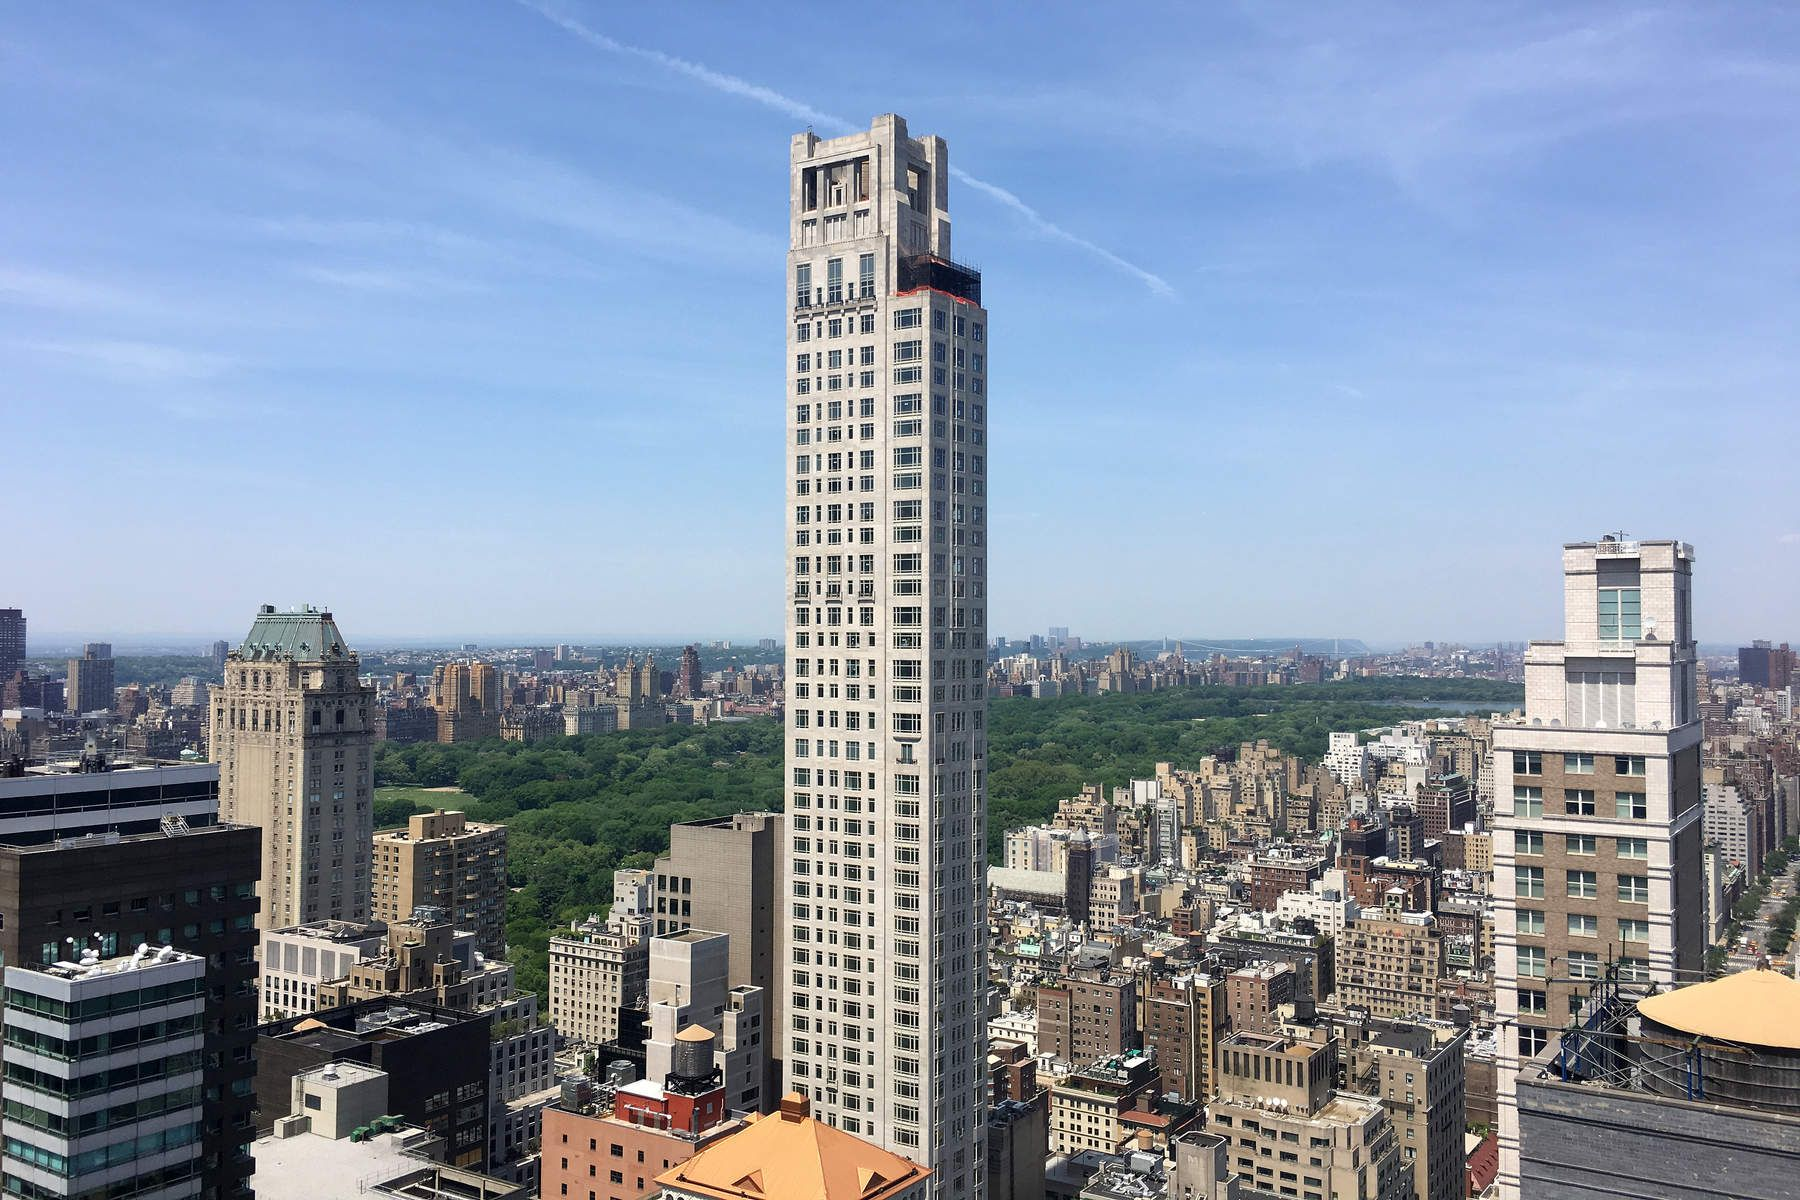 Martine Capdevielle_Luxury Real Estate NYC_117 EAST 57TH STREET APT 34h9.jpg